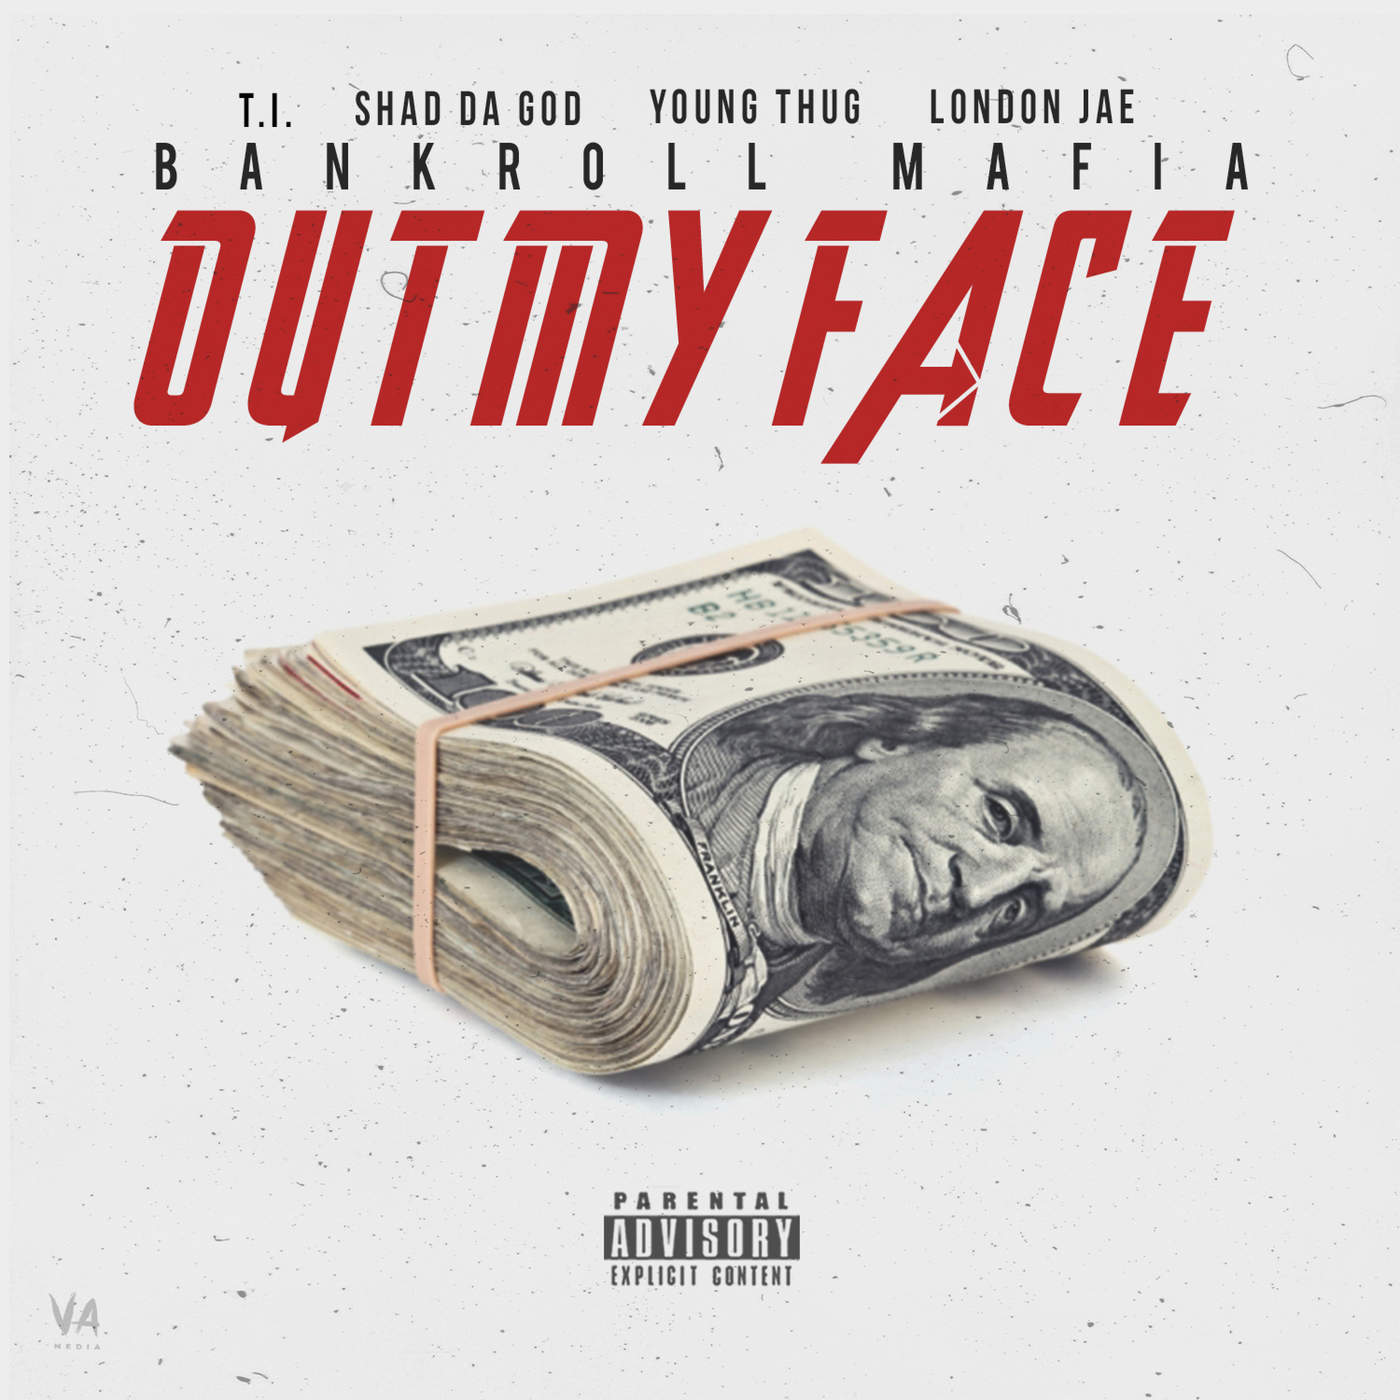 Bankroll Mafia - Out My Face (feat. T.I., Sha Da God, Young Thug & London Jae) - Single Cover